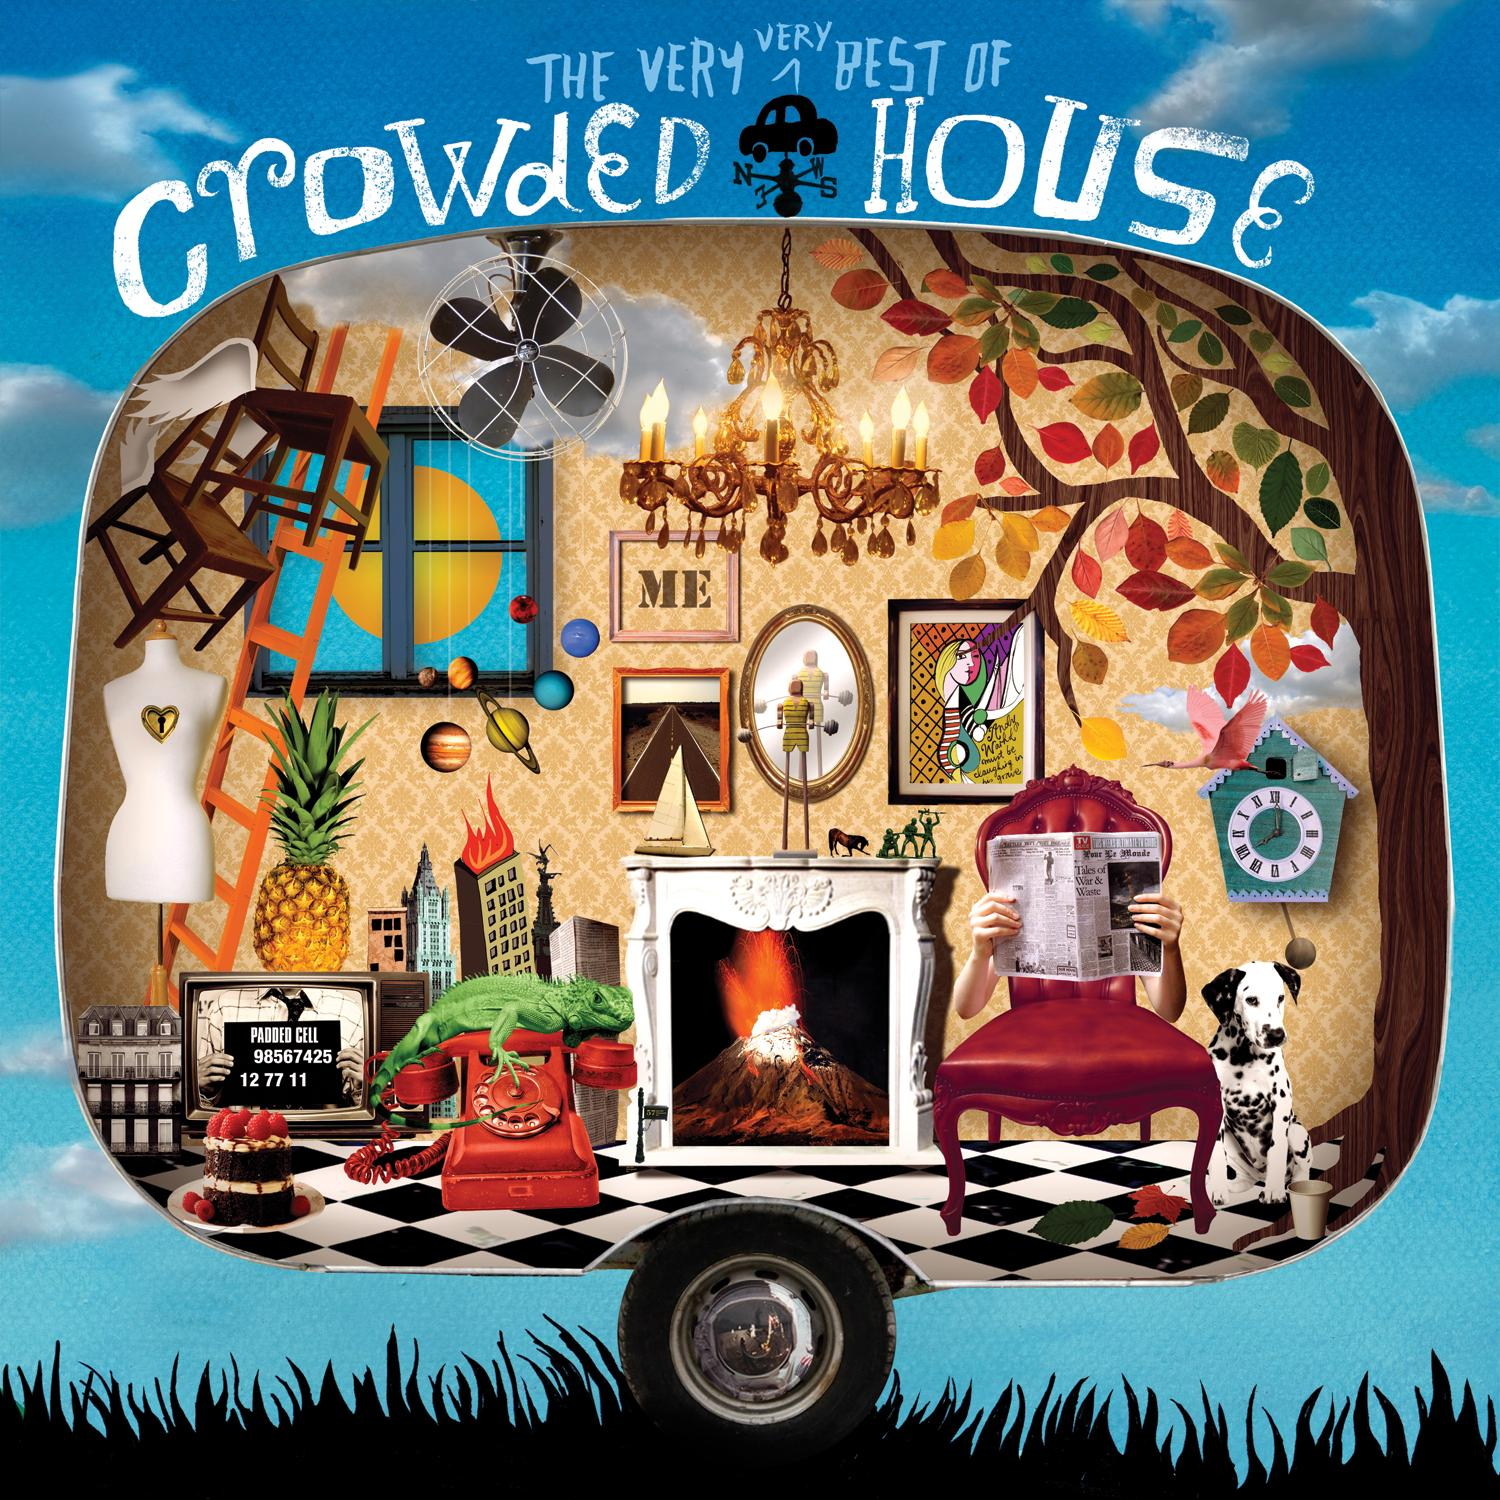 New Crowded House Best Of On Cd Expanded Digital Steve